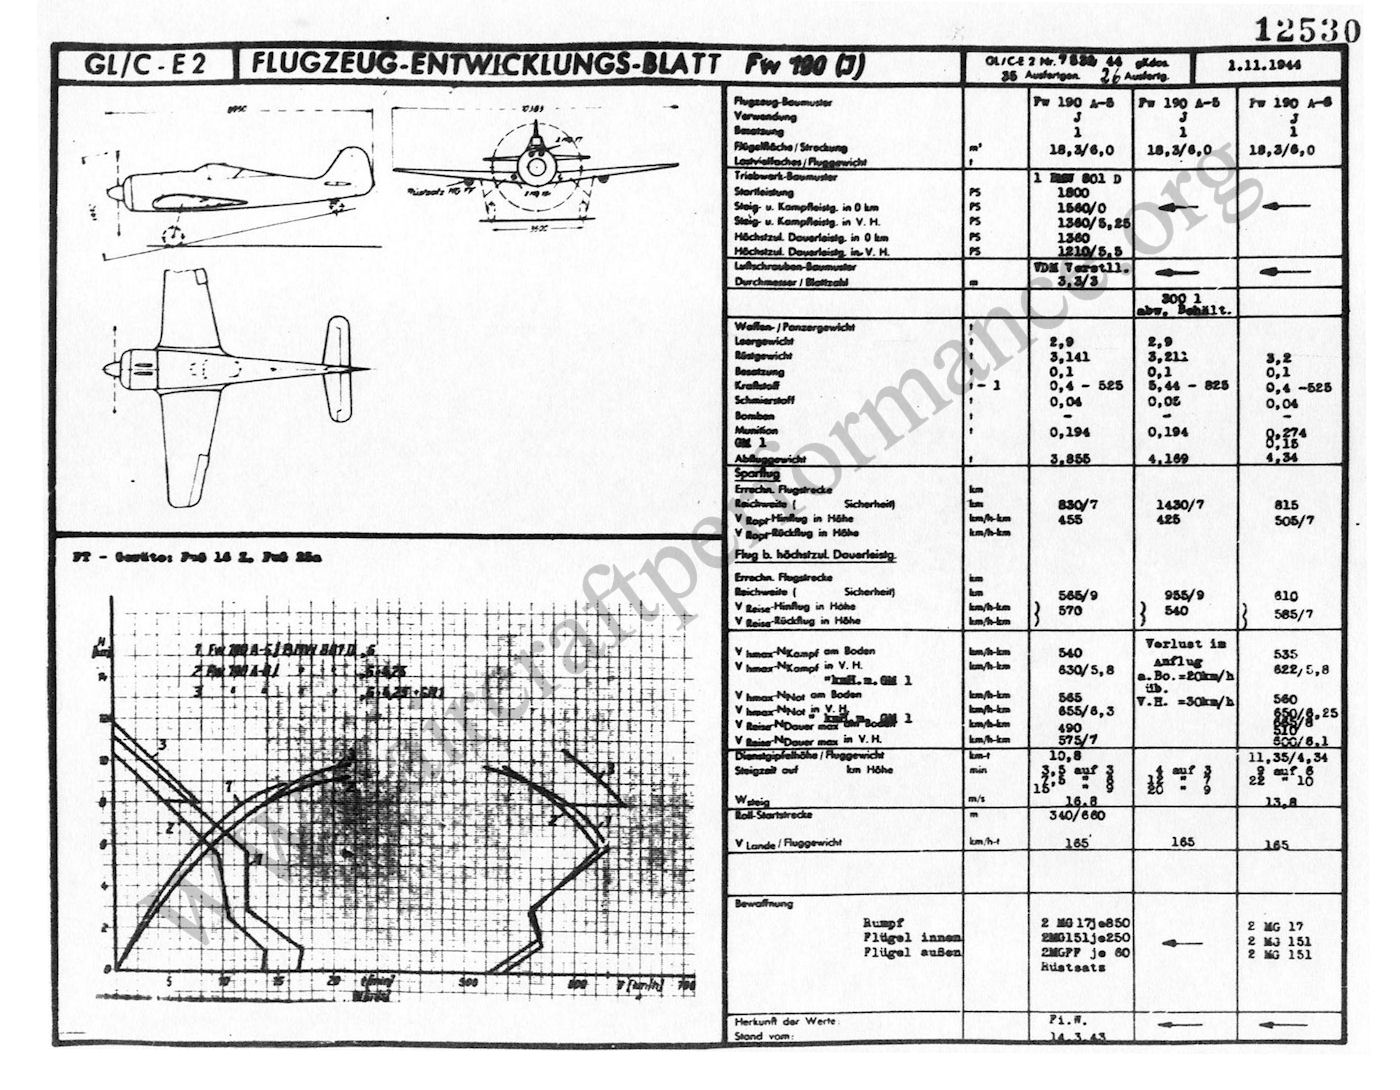 Fw 190 A 5 Performance 1966 Ford Mustang Tail Lights Wiring Diagram 158 165 Ata Was Not Cleared For Service Use This Varient Up To The Date Of Publication